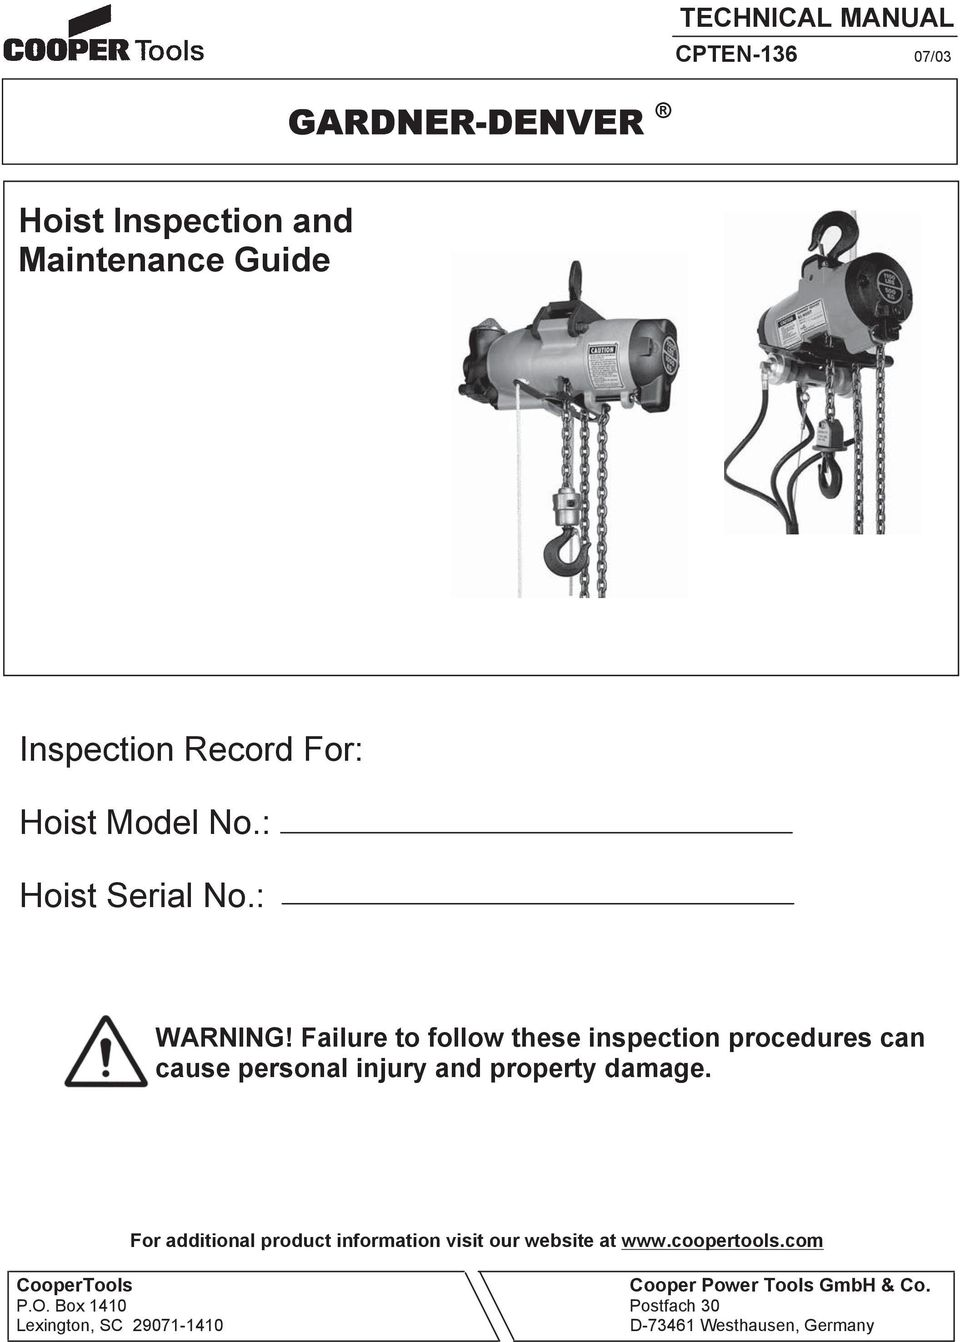 Failure to follow these inspection procedures can cause personal injury and property damage.